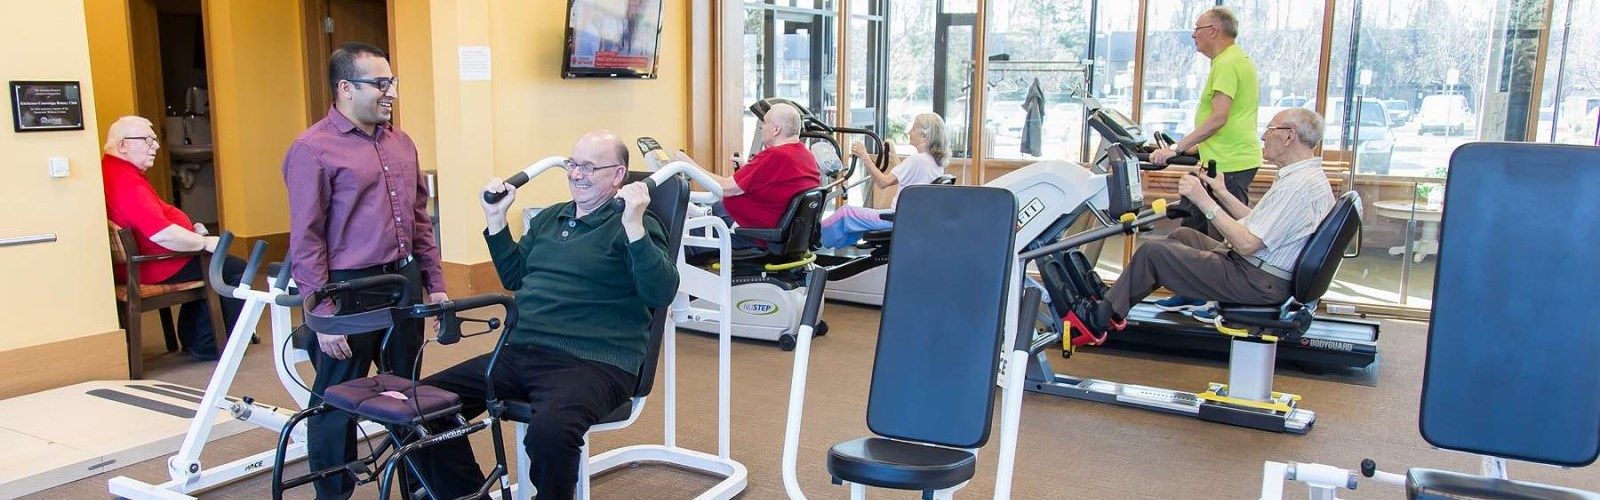 Older adults working out on the treadmill and equipment inside Sunnyside Wellness Centre.